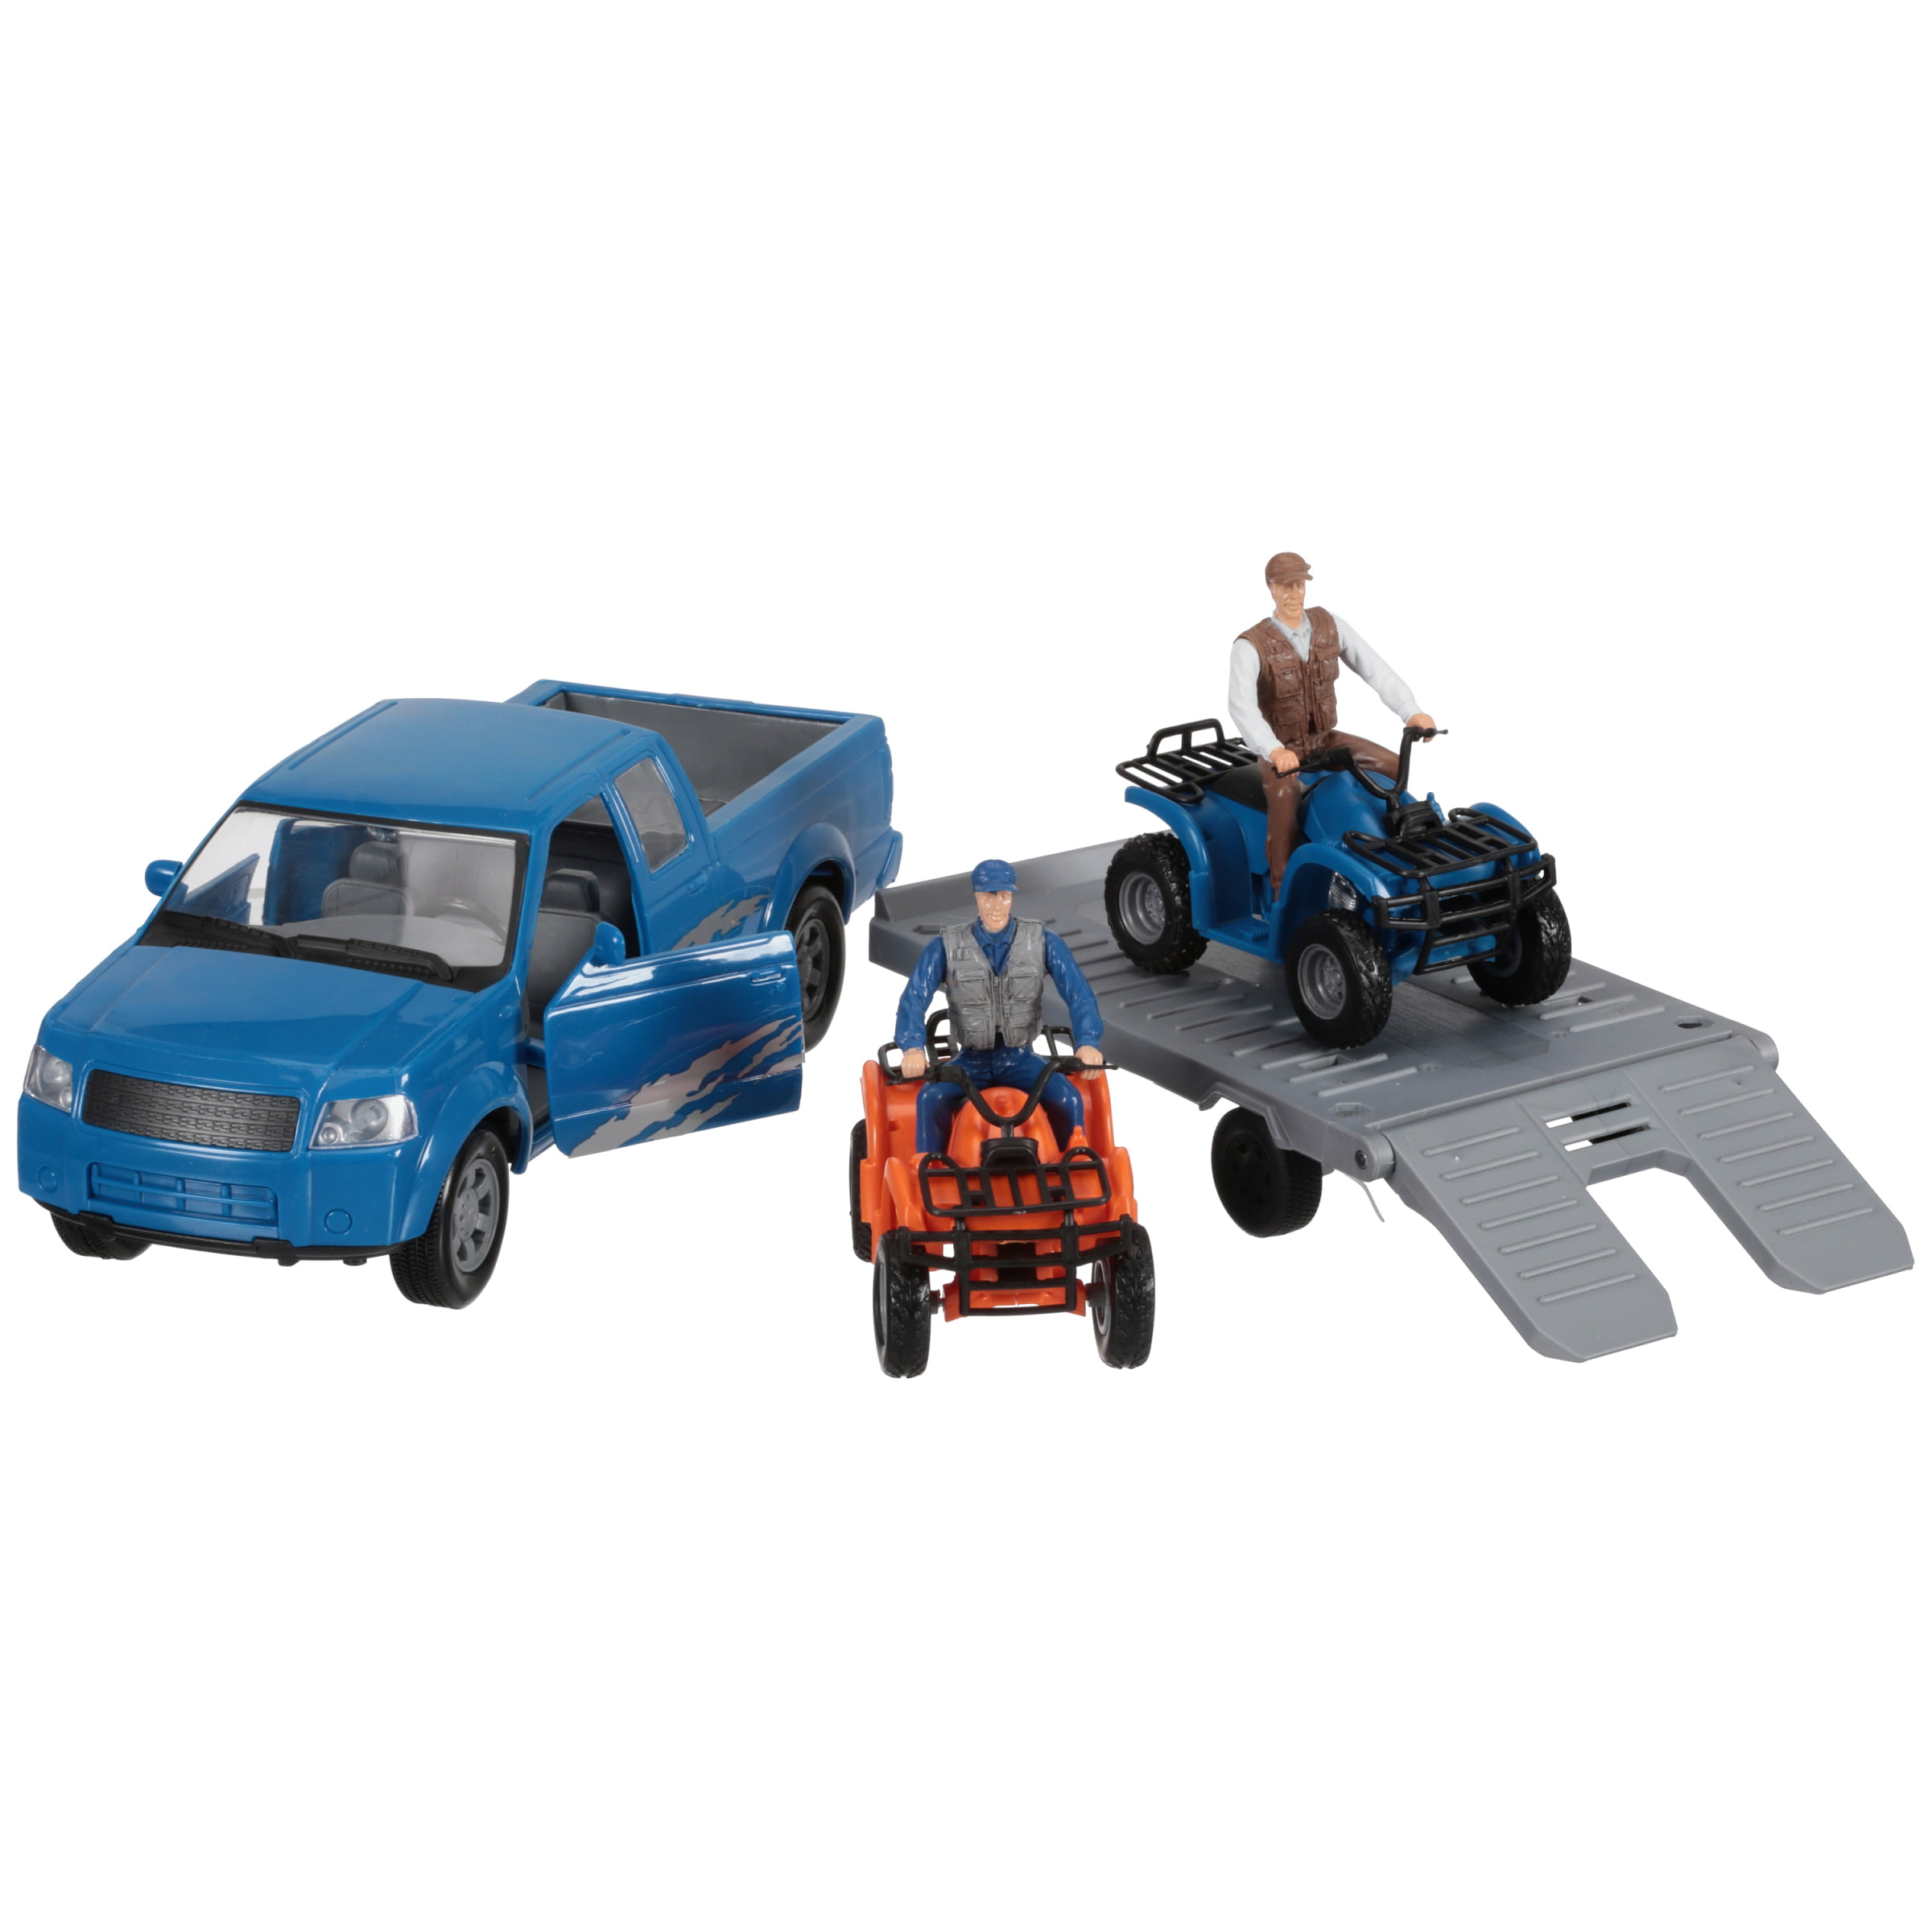 New Ray Extreme Adventure Blue Pick-Up Truck with Trailer & ATV 6 pc Box by New-Ray Toys (CA) Inc.